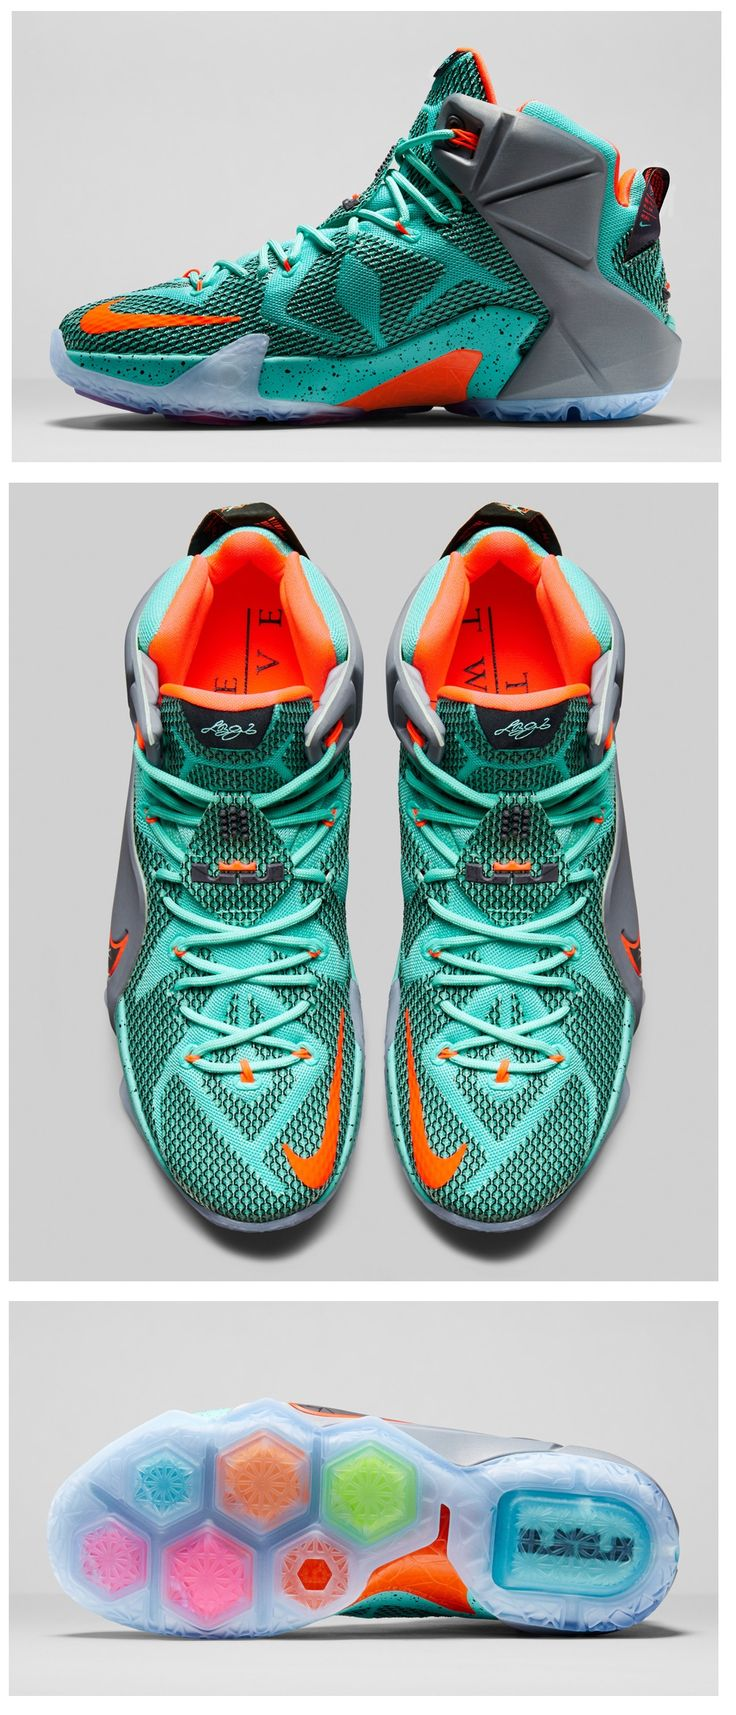 Nike LeBron 12 TipChallenger, test you skill and knowledge of sport and share in $5,000 Daily Jackpot. Do you have what it take to beat the Challenger? The best way to fund these goodies?? just a bit more cash!!! http://www.EliteEarning.info/RAF